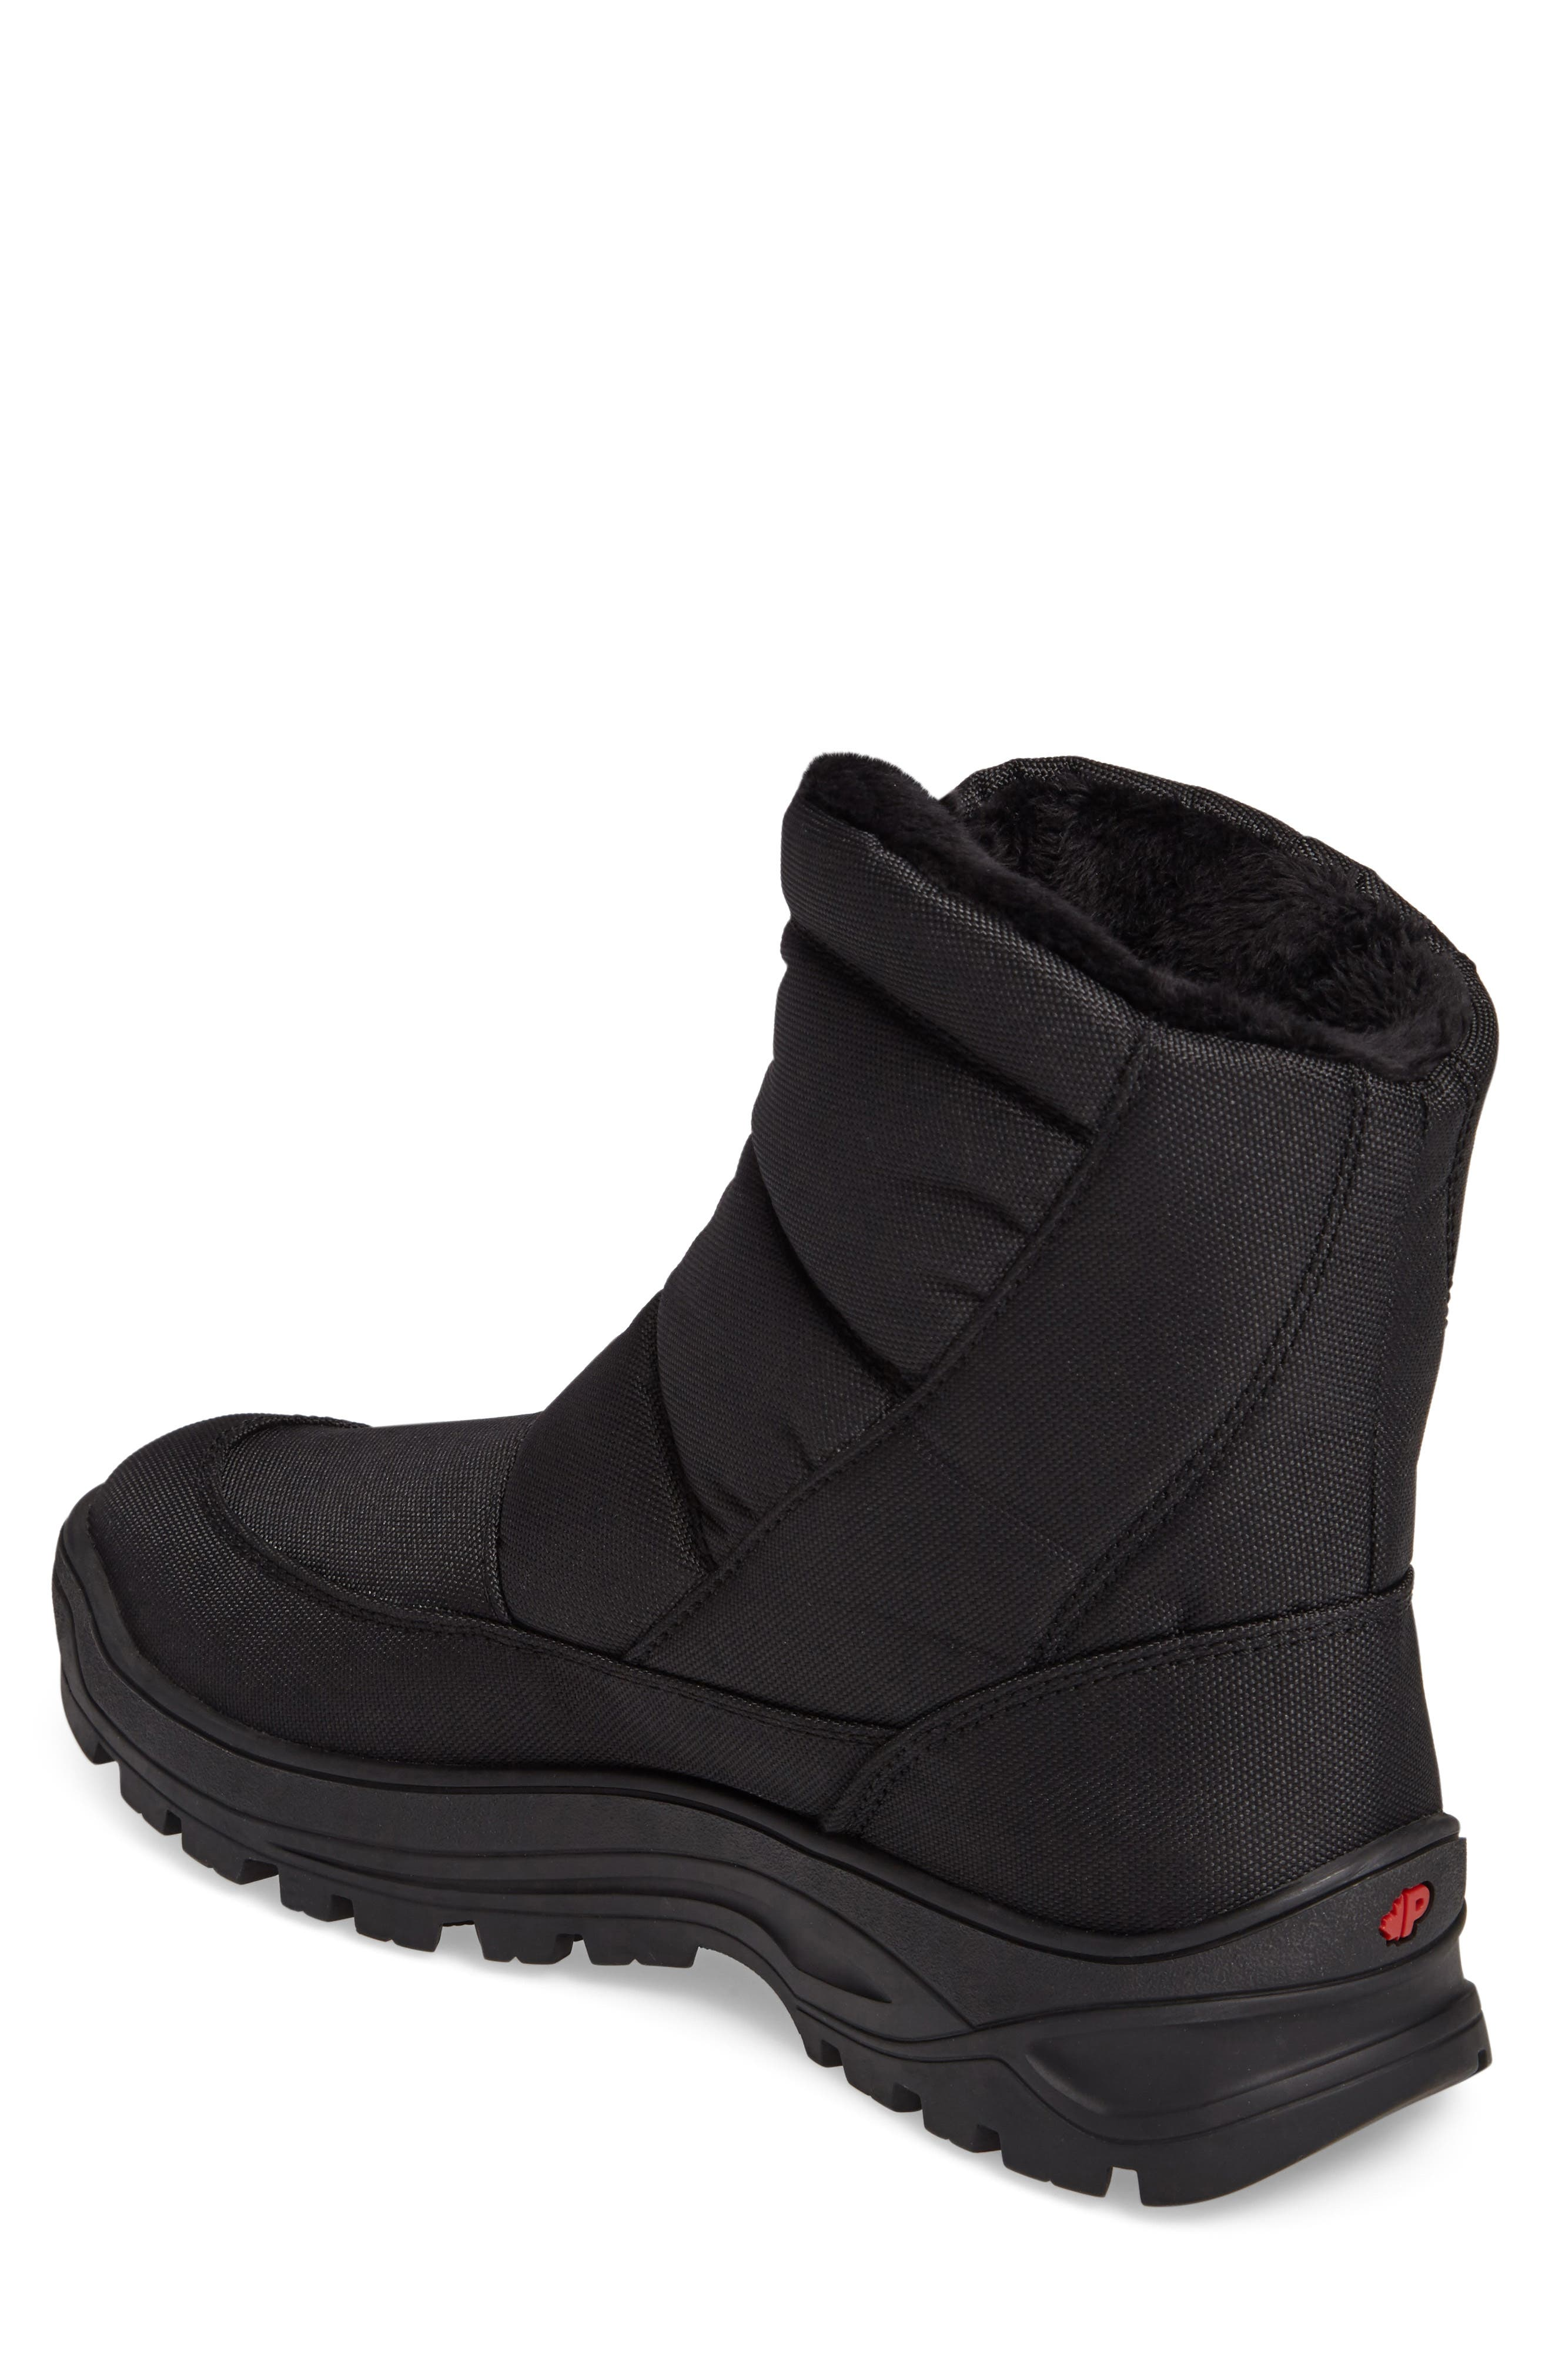 Icepack Boot with Faux Fur Lining,                             Alternate thumbnail 2, color,                             001